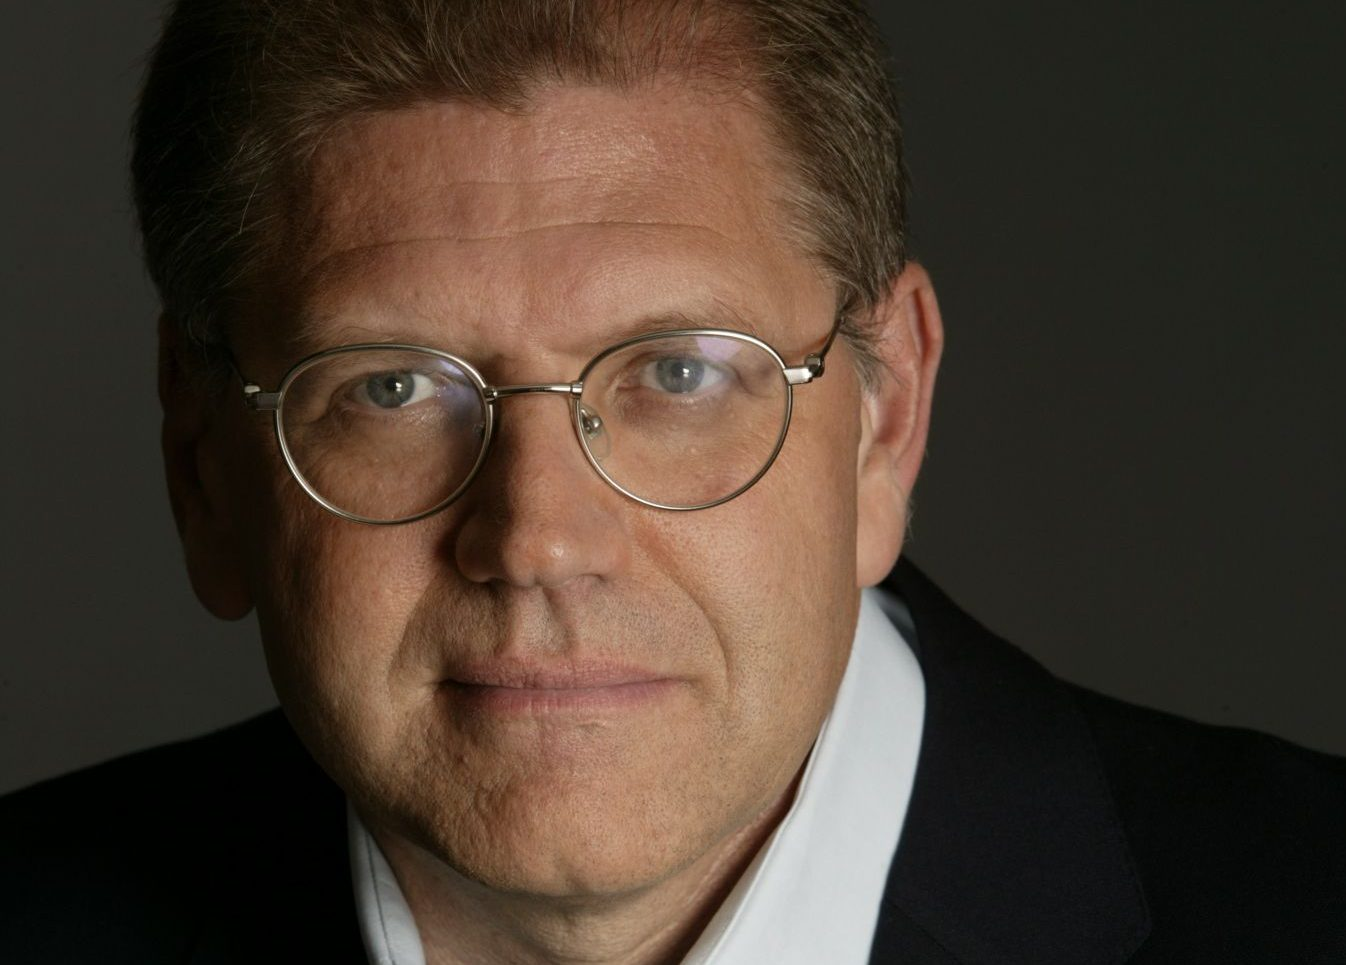 Robert Zemeckis Closes Deal To Direct & Co-Write Disney's Live-Action 'Pinocchio'